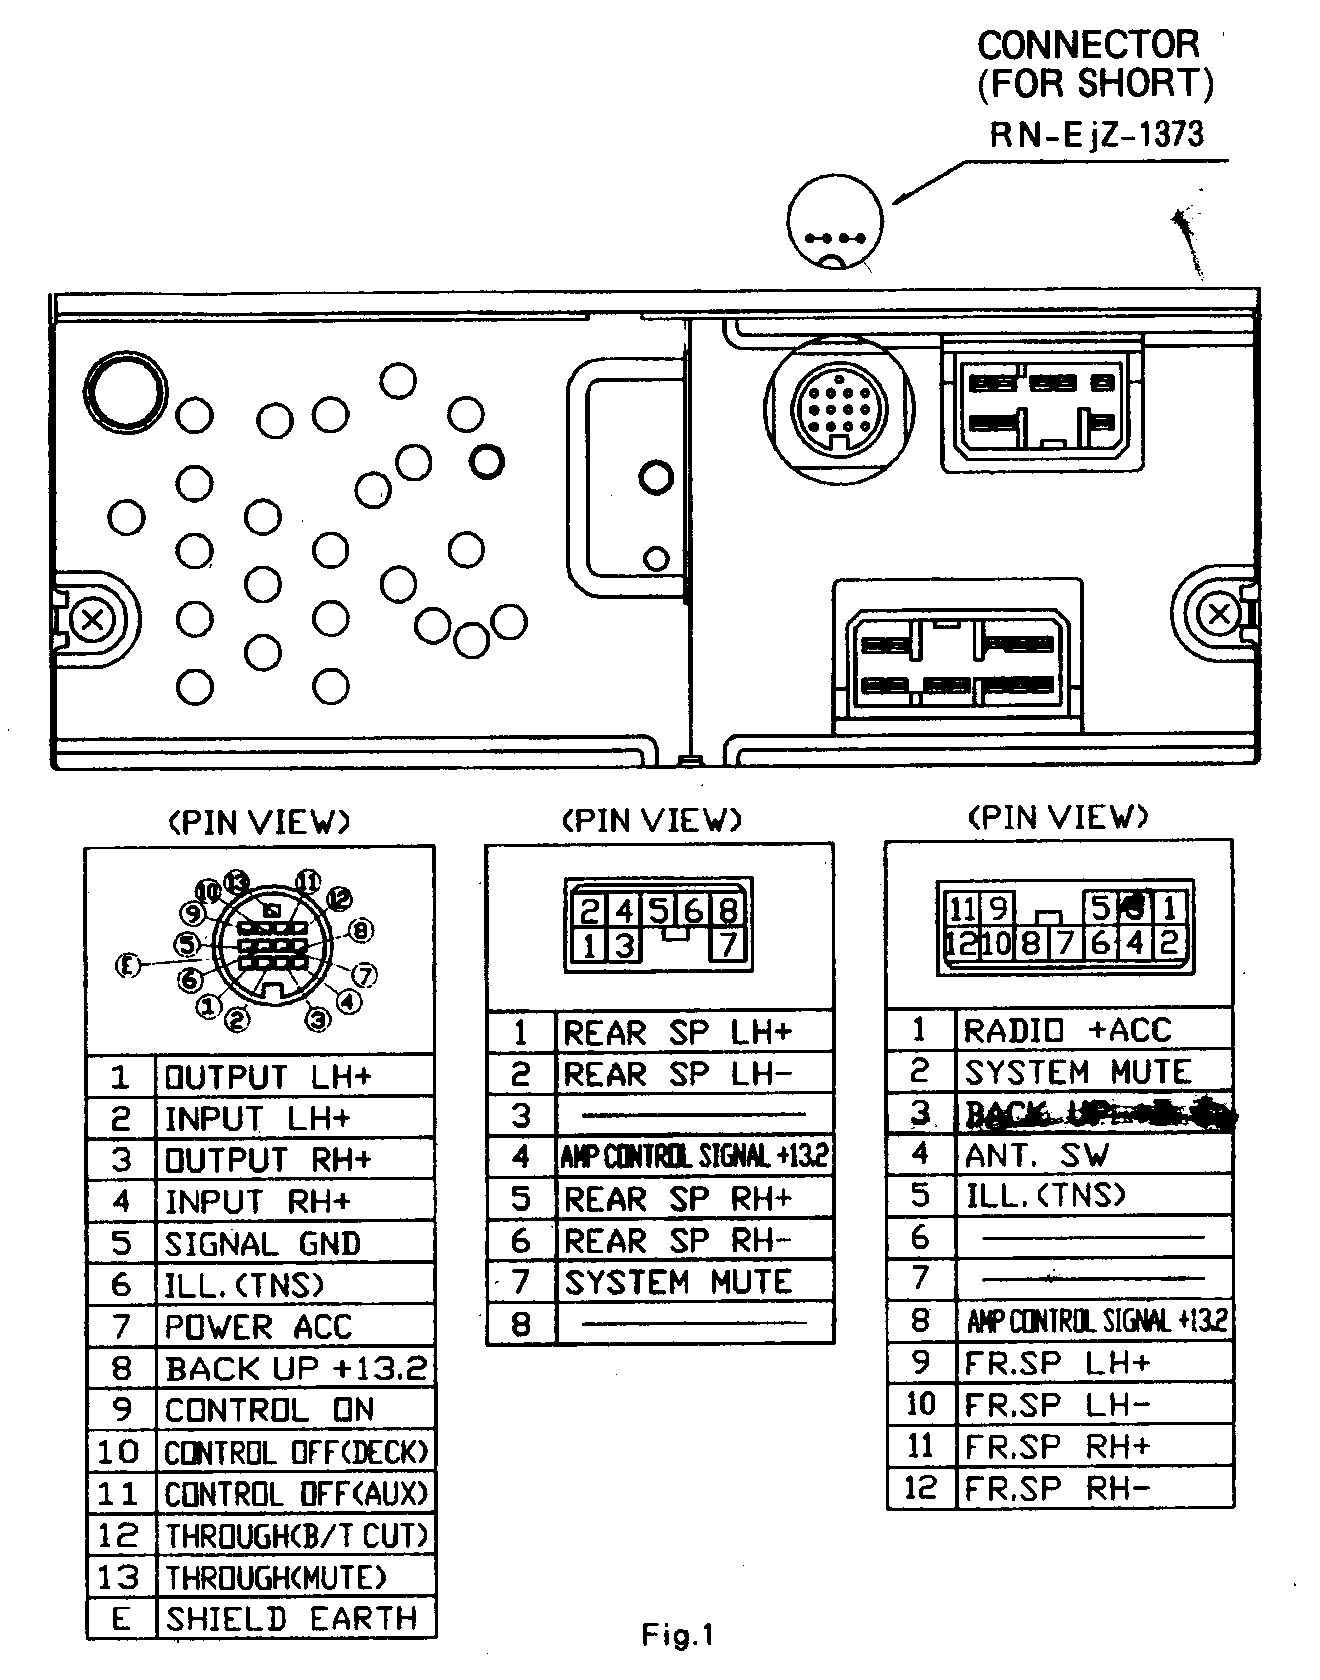 hight resolution of nissan micra k11 stereo wiring diagram 38 wiring diagram images nissan 200sx s14 nissan micra k11 2001 wiring diagram